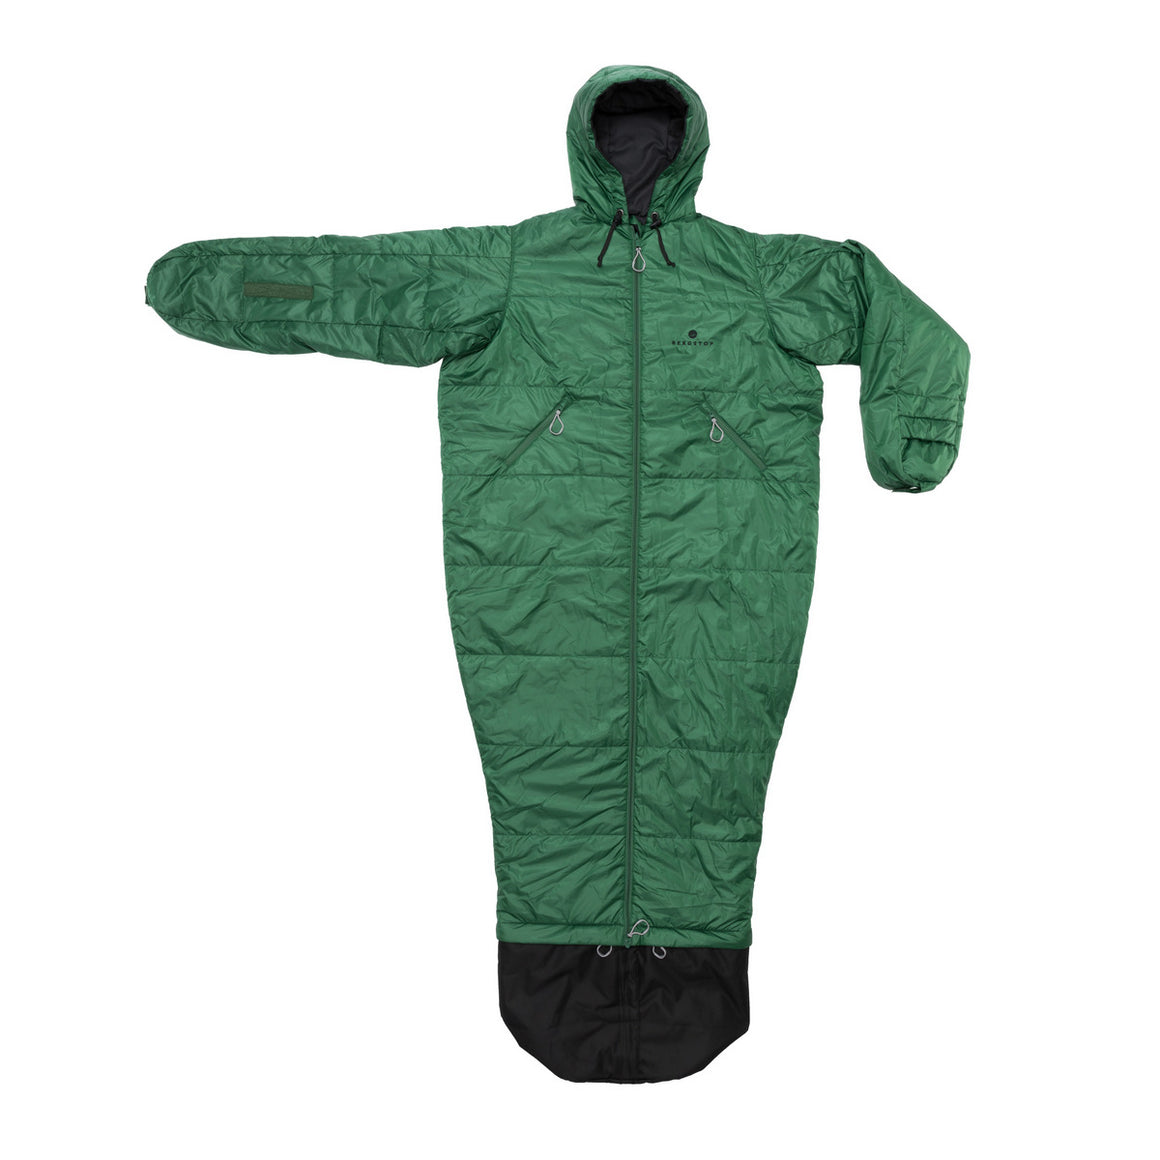 CozyBag Zippy von Bergstop: extra large wearable sleeping bag